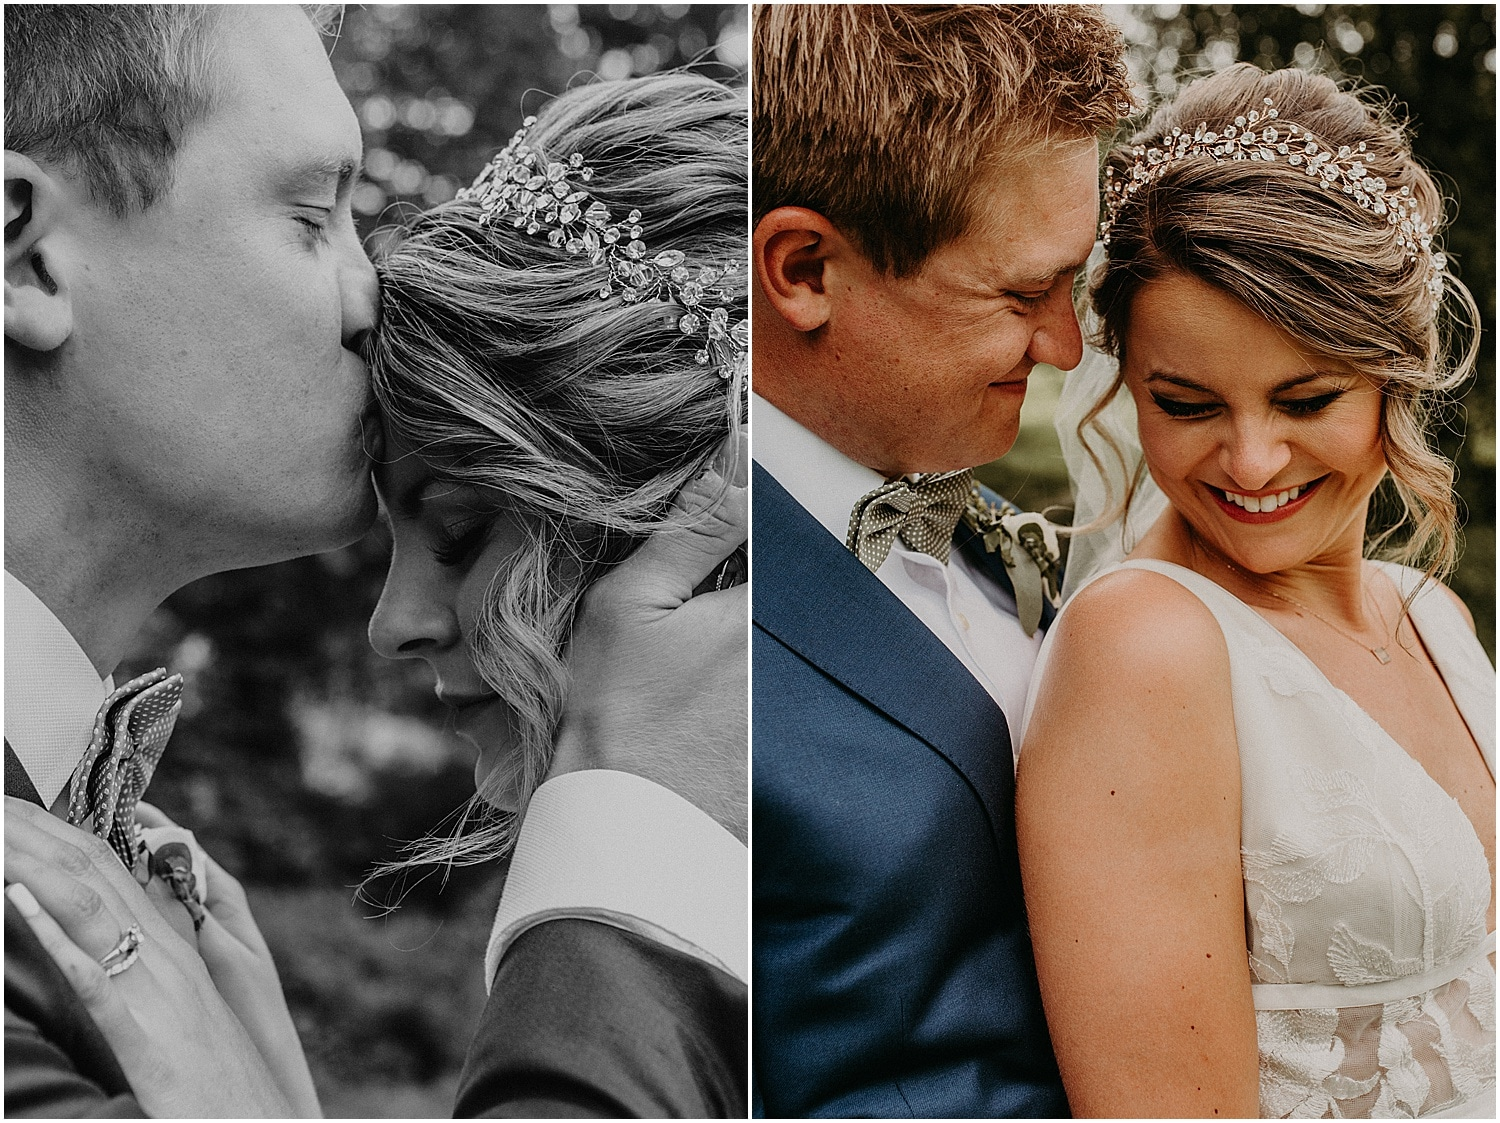 intimate moments between bride and groom at their Barn at Silver Oaks Wedding